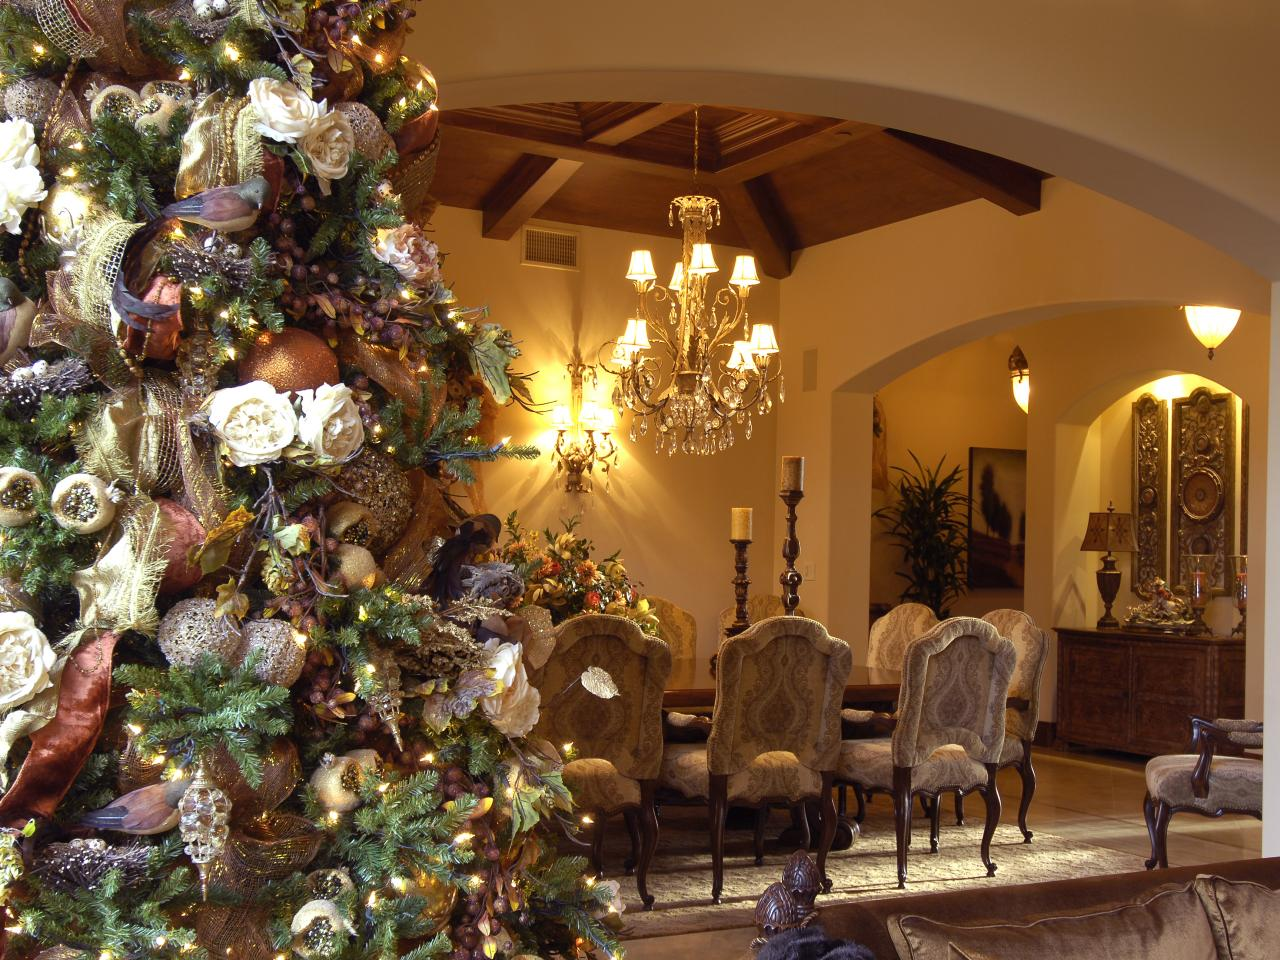 Christmas tree decorating ideas interior design styles for Christmas home ideas